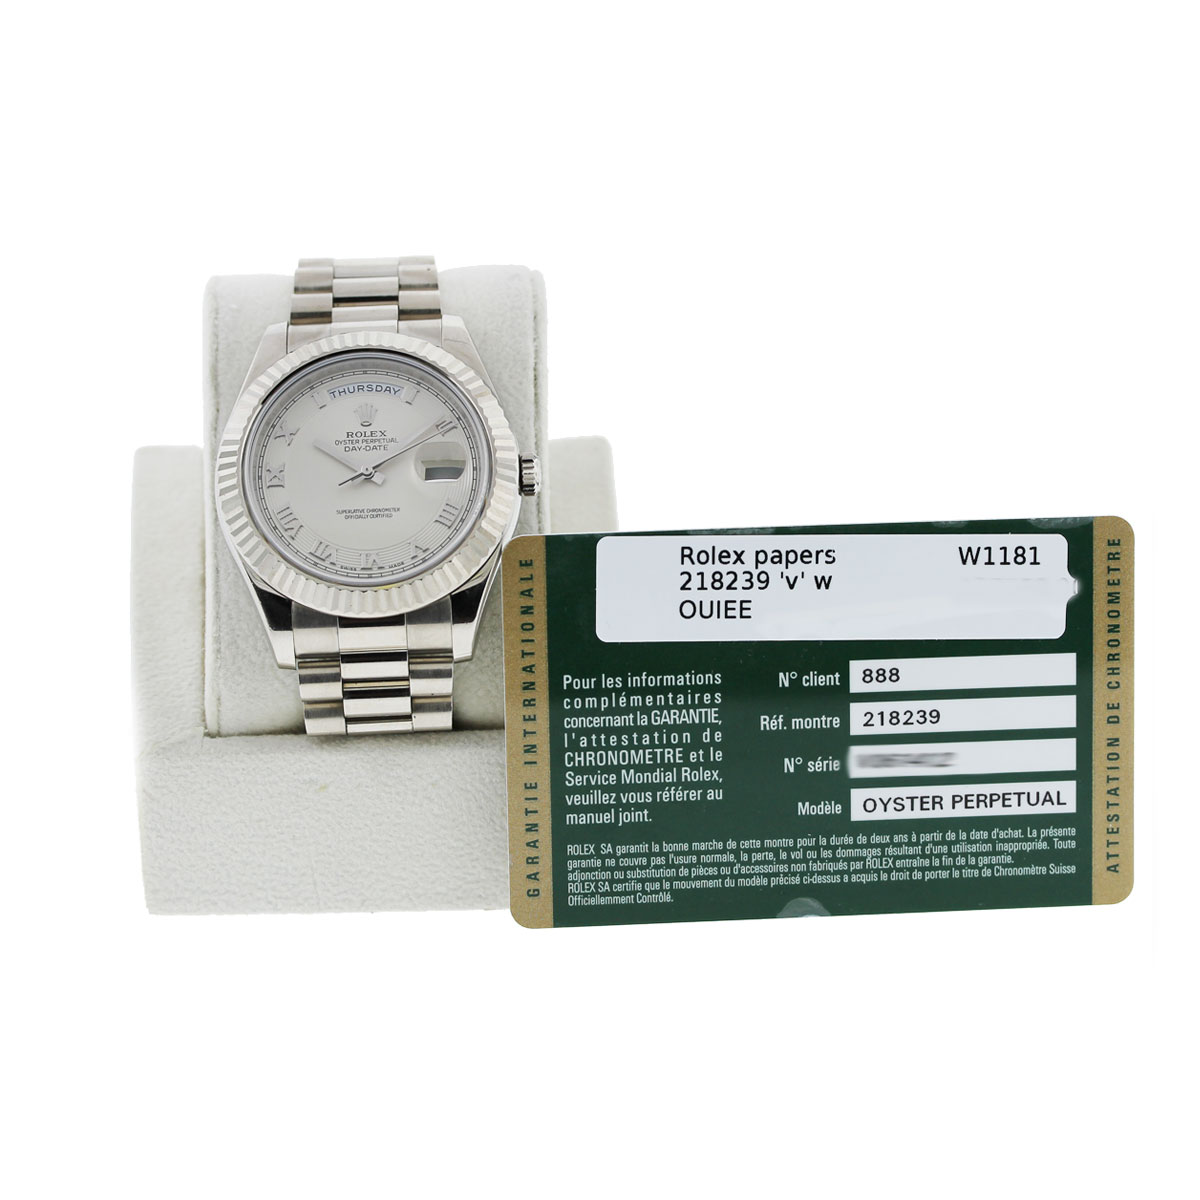 Rolex Day Date 218239 Eggshell Roman Dial 18k White Gold Watch papers